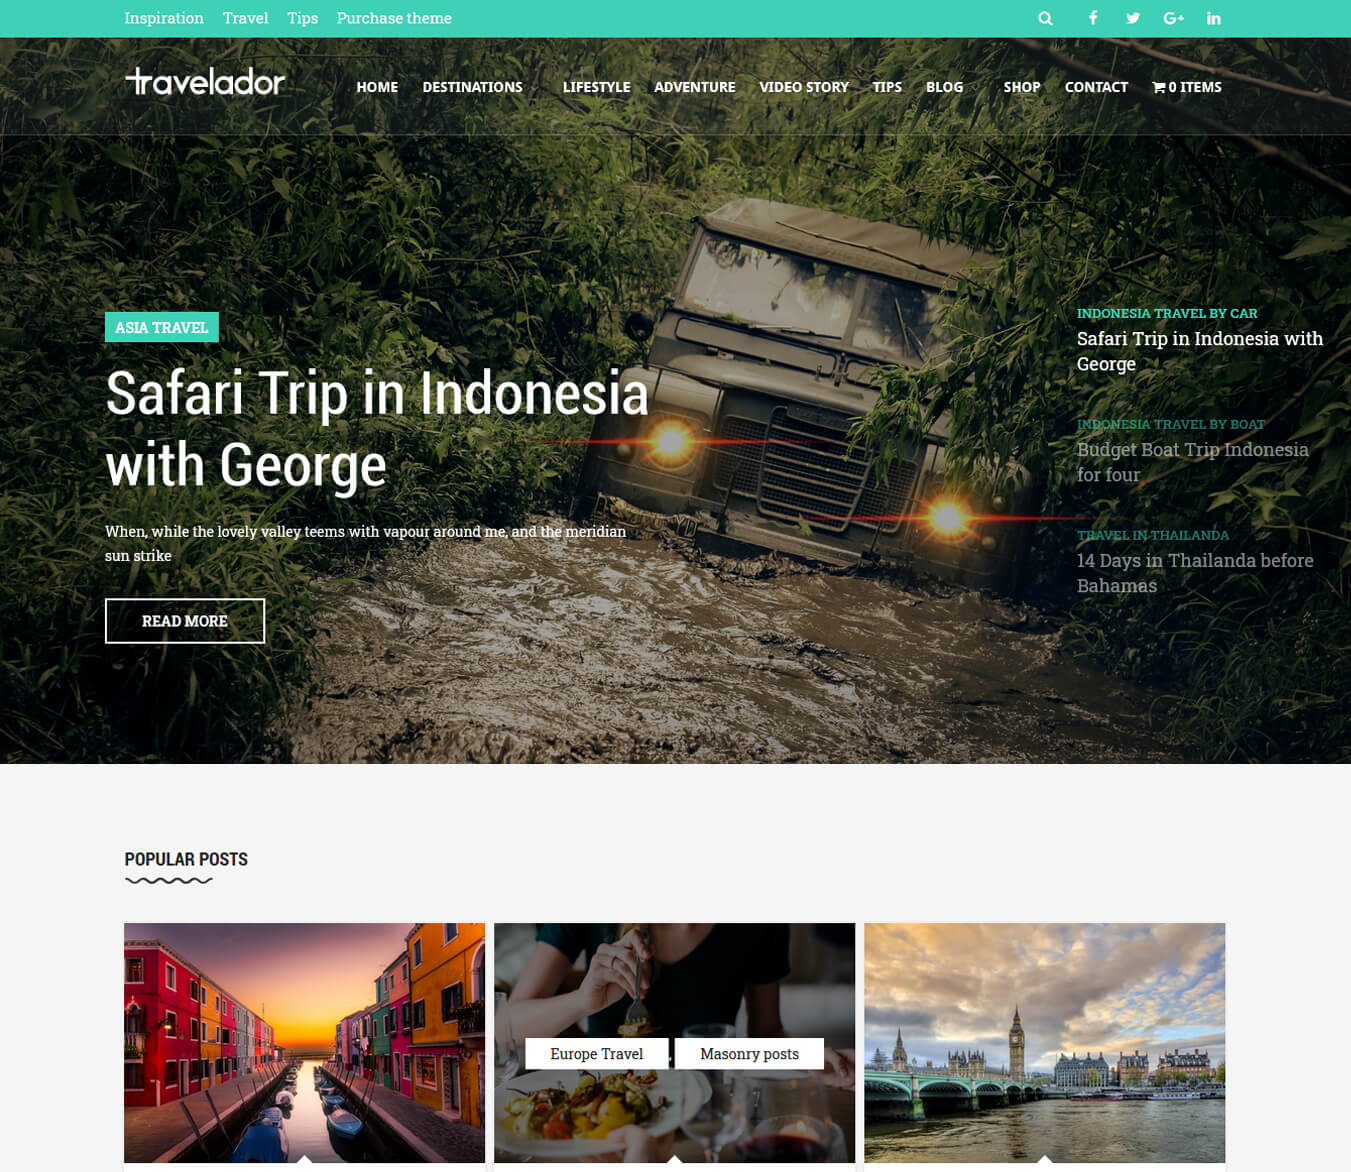 Travelador - Blog Tourism & WooCommerce Shop Theme